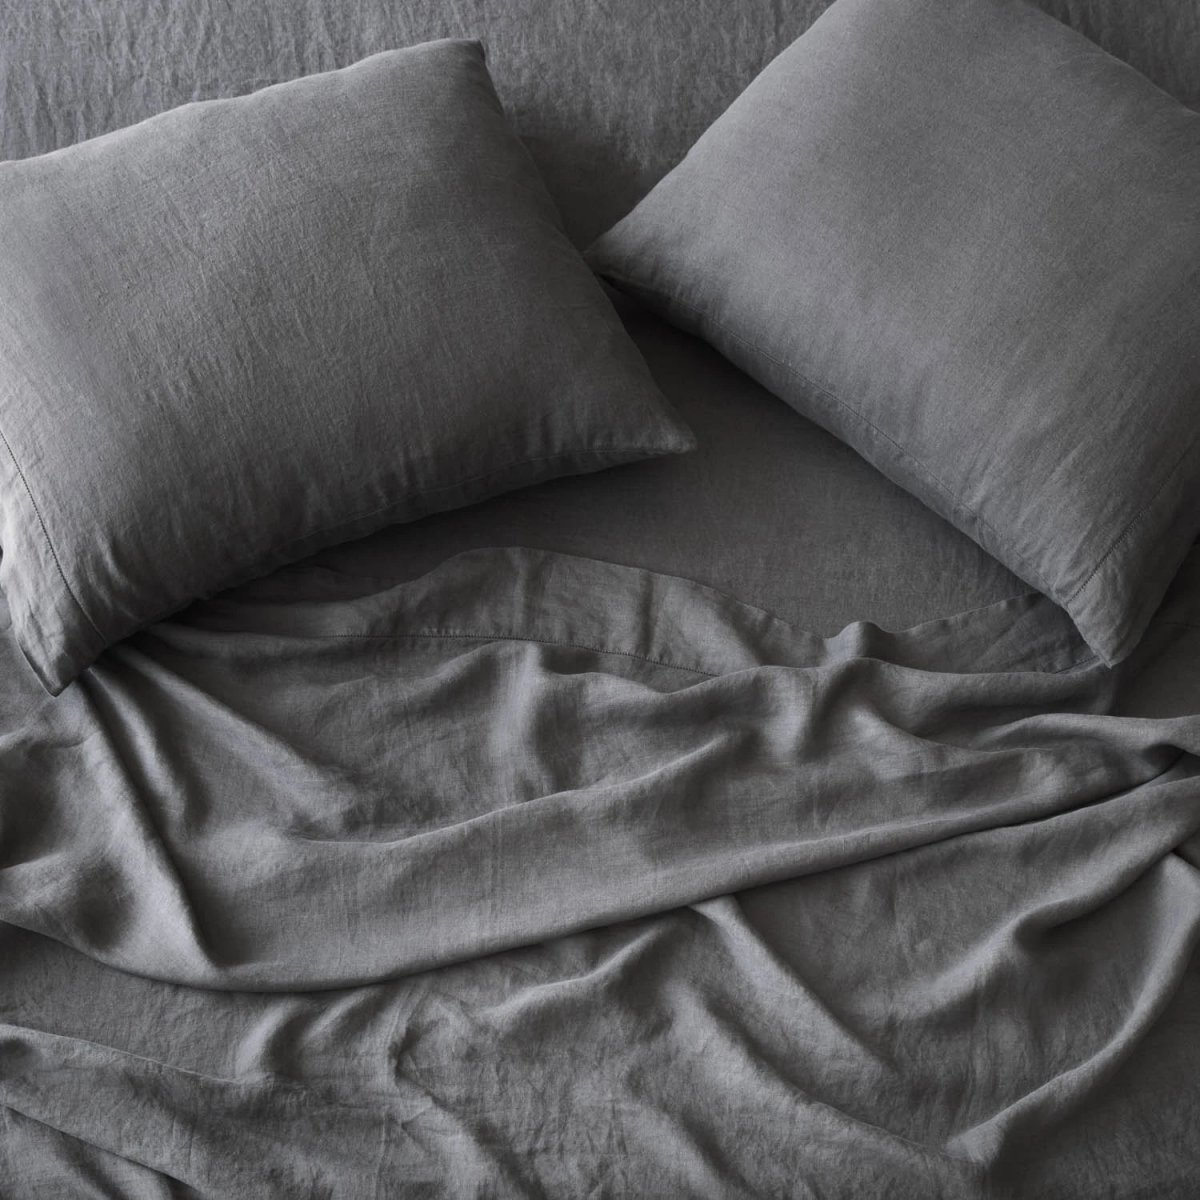 Stonewashed Linen Bed Bundle, charcoal.